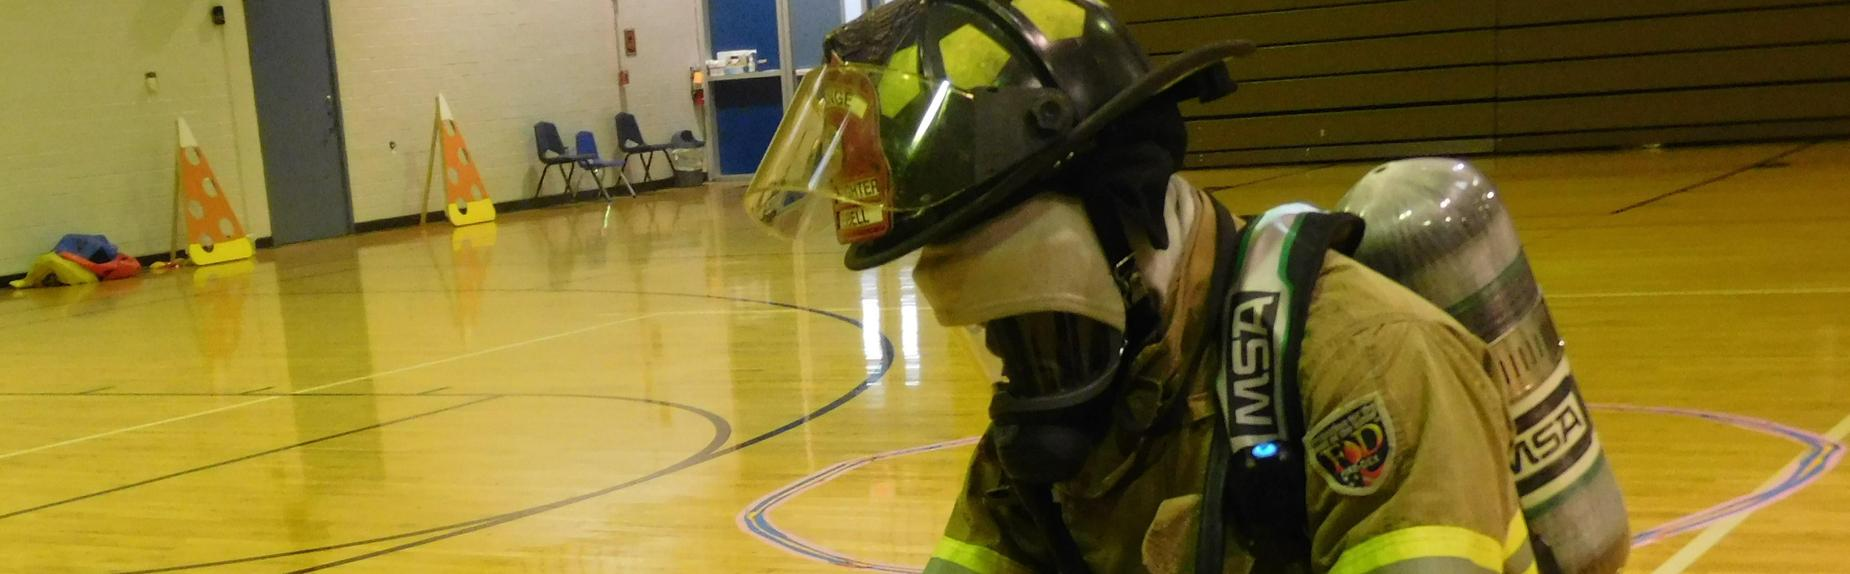 Firefighter dresses up for North students